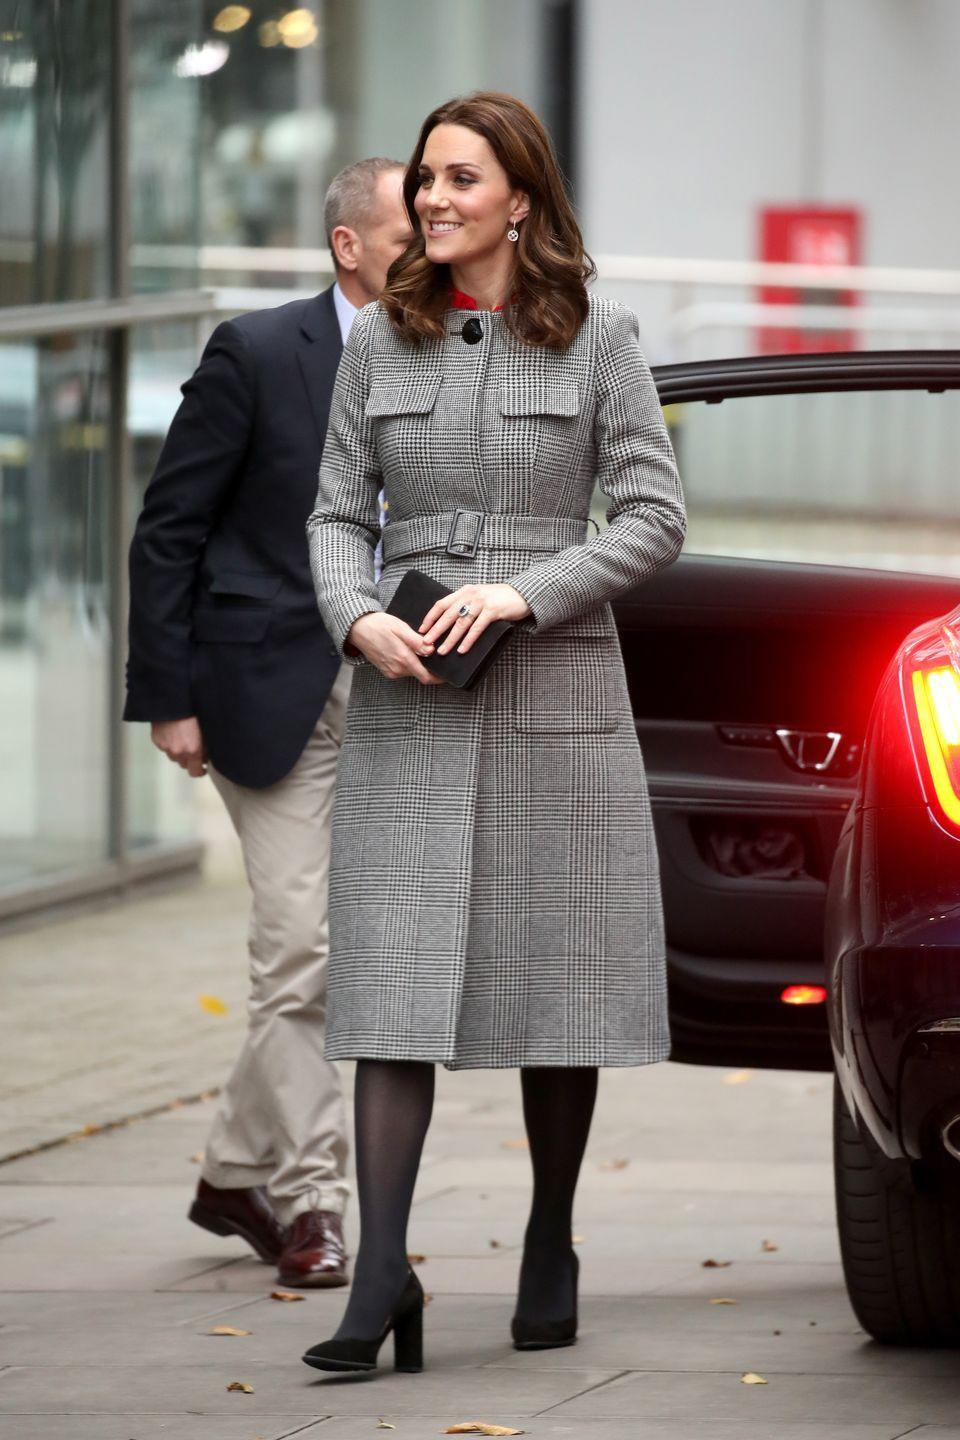 """<p>While attending the Children's Global Media Summit in Manchester, Kate wore <a href=""""https://www.lkbennett.com/product/CCDELLIACRYLICMIXPrintBlack%20White~Delli-Check-Coat-Black%20White"""" rel=""""nofollow noopener"""" target=""""_blank"""" data-ylk=""""slk:a gray checkered coat from L.K. Bennett"""" class=""""link rapid-noclick-resp"""">a gray checkered coat from L.K. Bennett</a> paired with sheer black tights and pumps.</p>"""